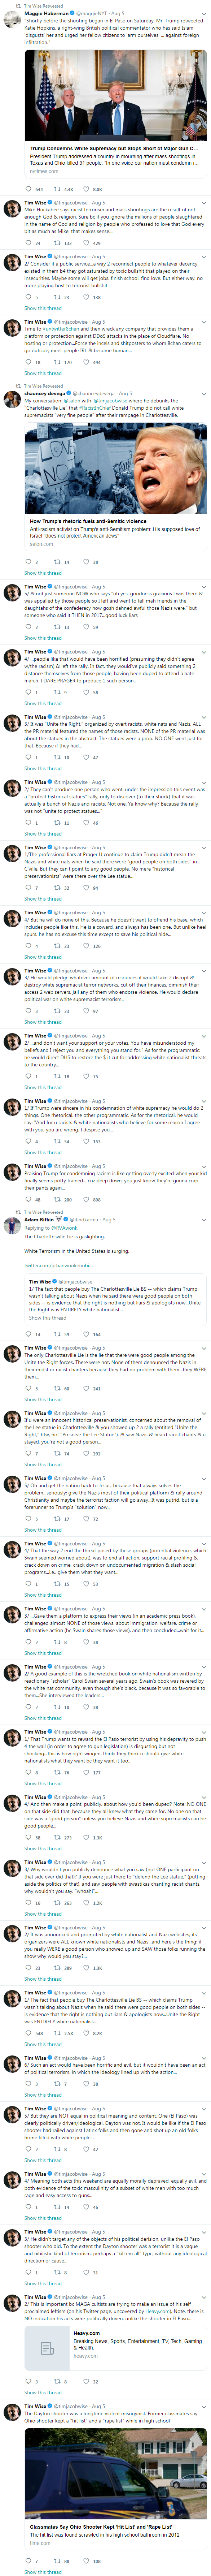 Tim_Wise_Twitter_8-14-2018_1145PM_08.png